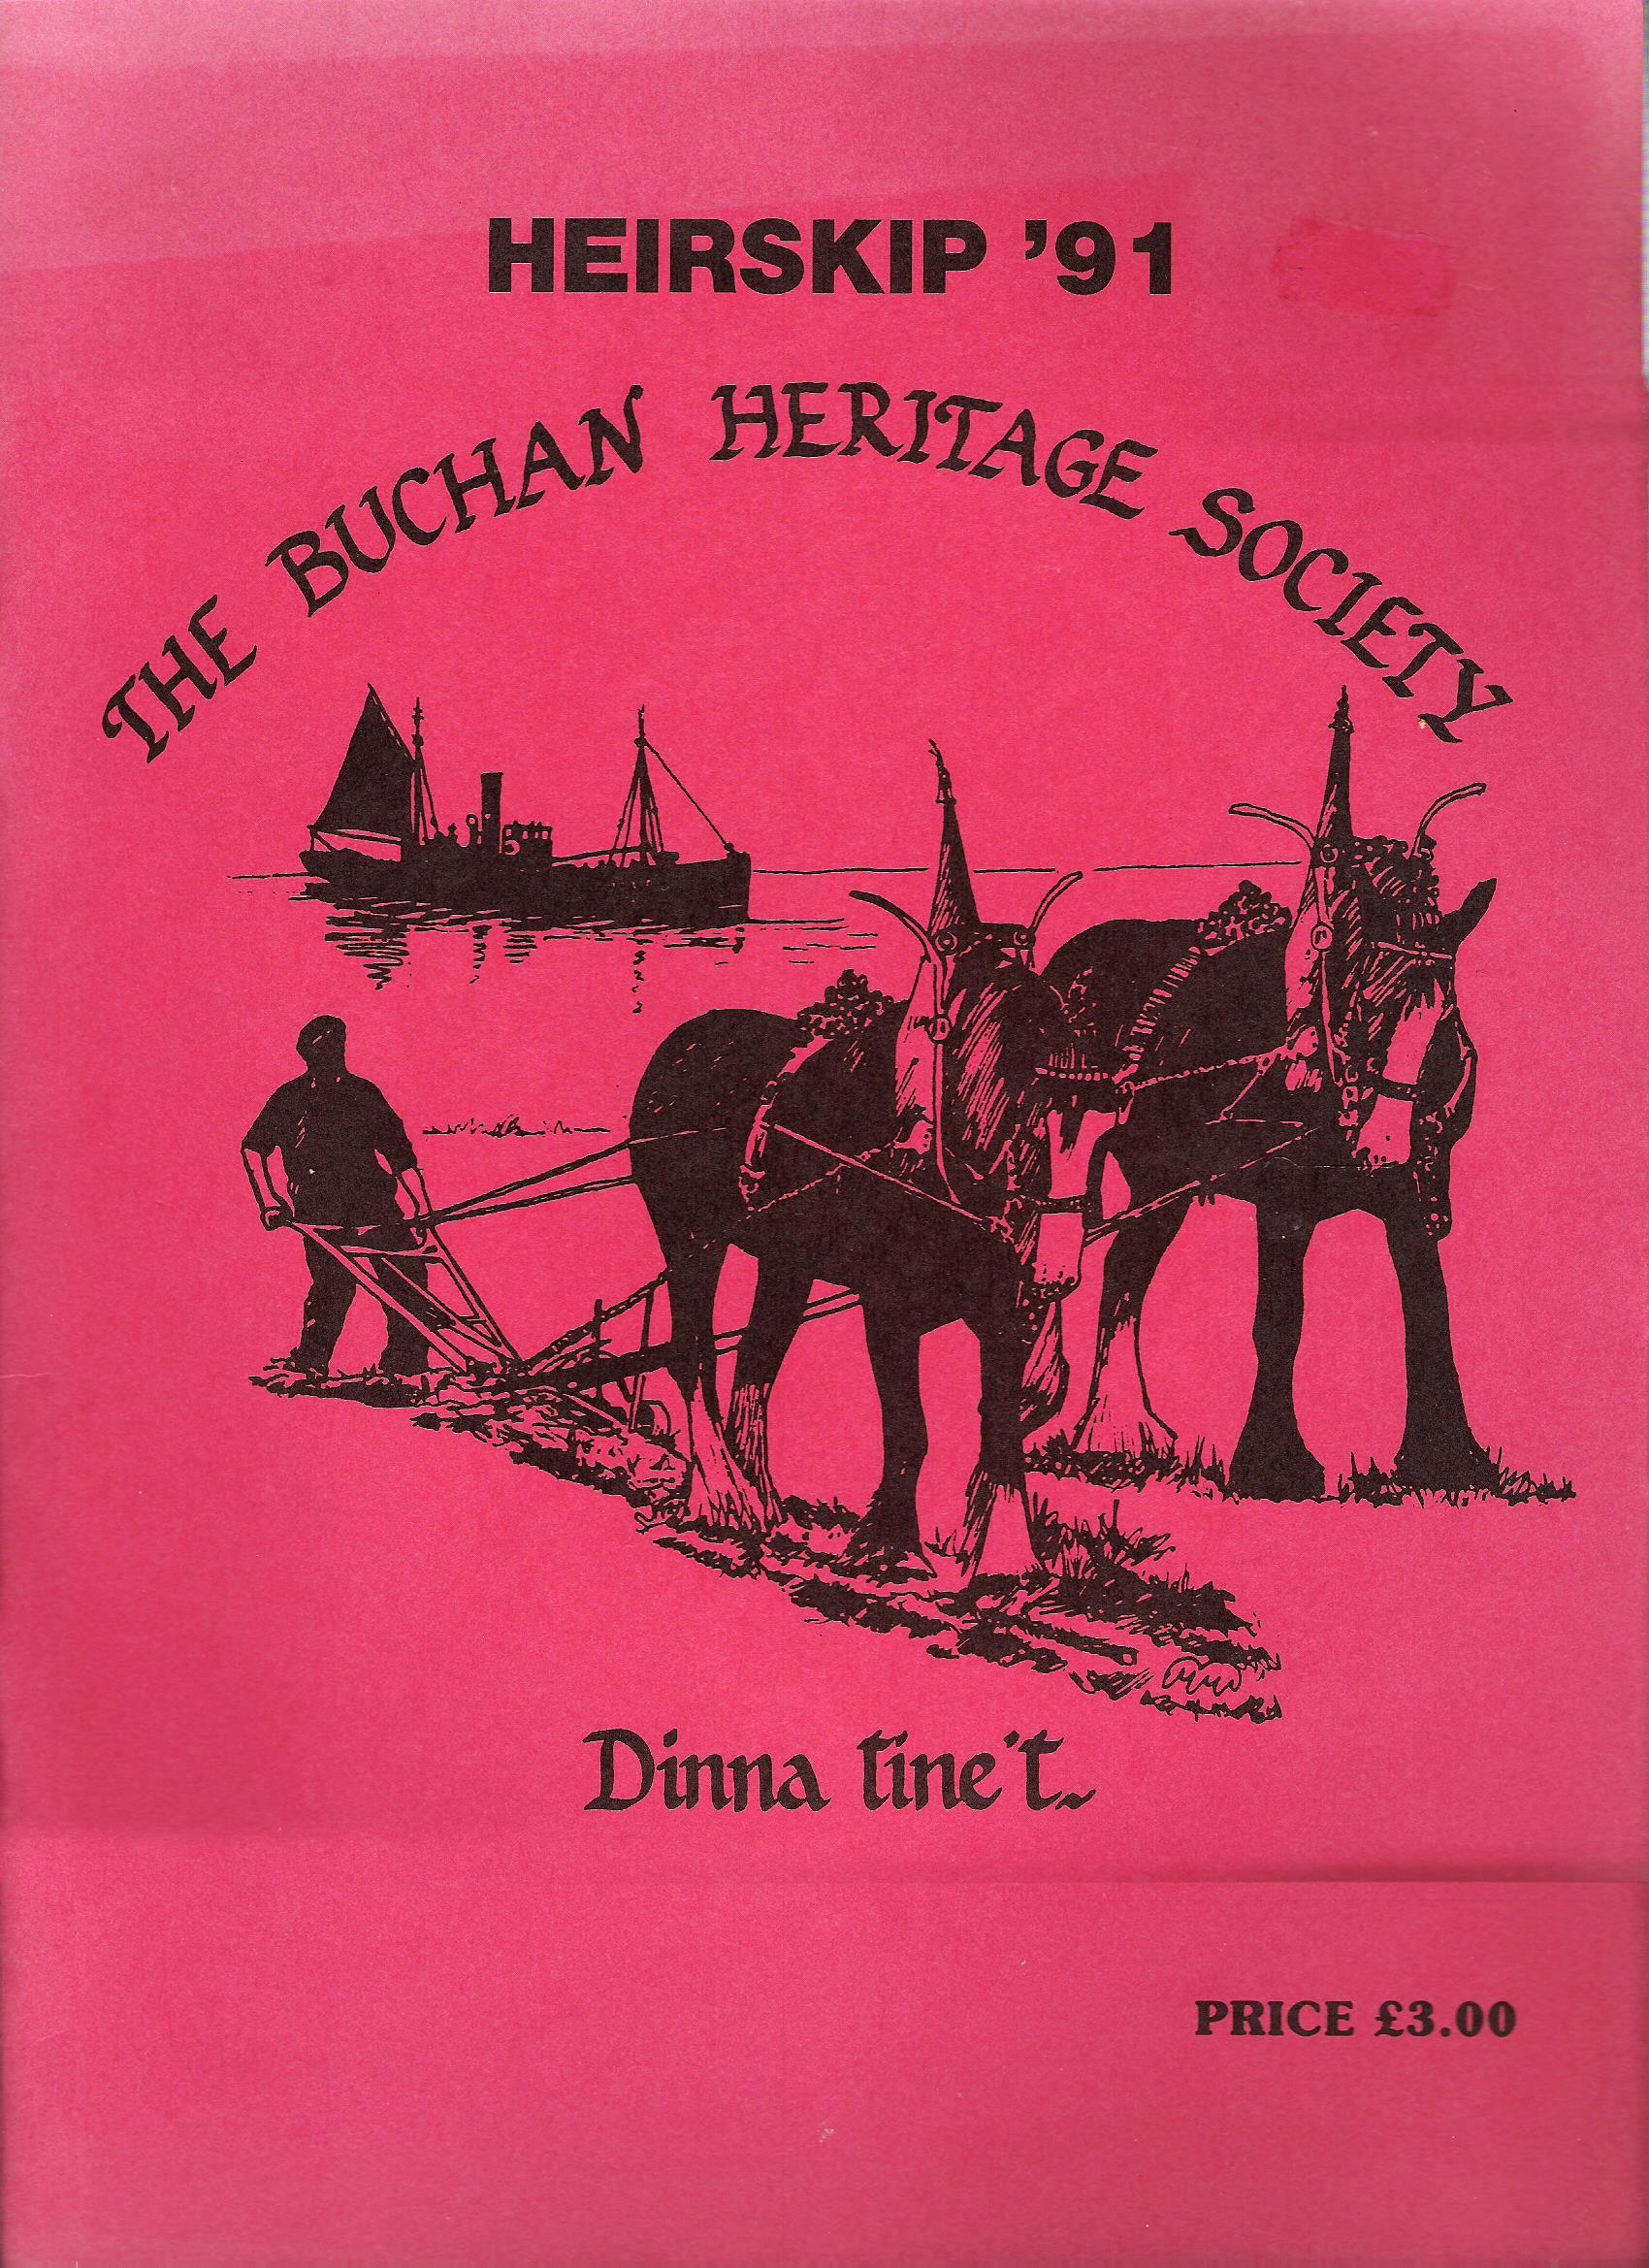 Image for Heirskip '91: The Buchan Heritage Society.